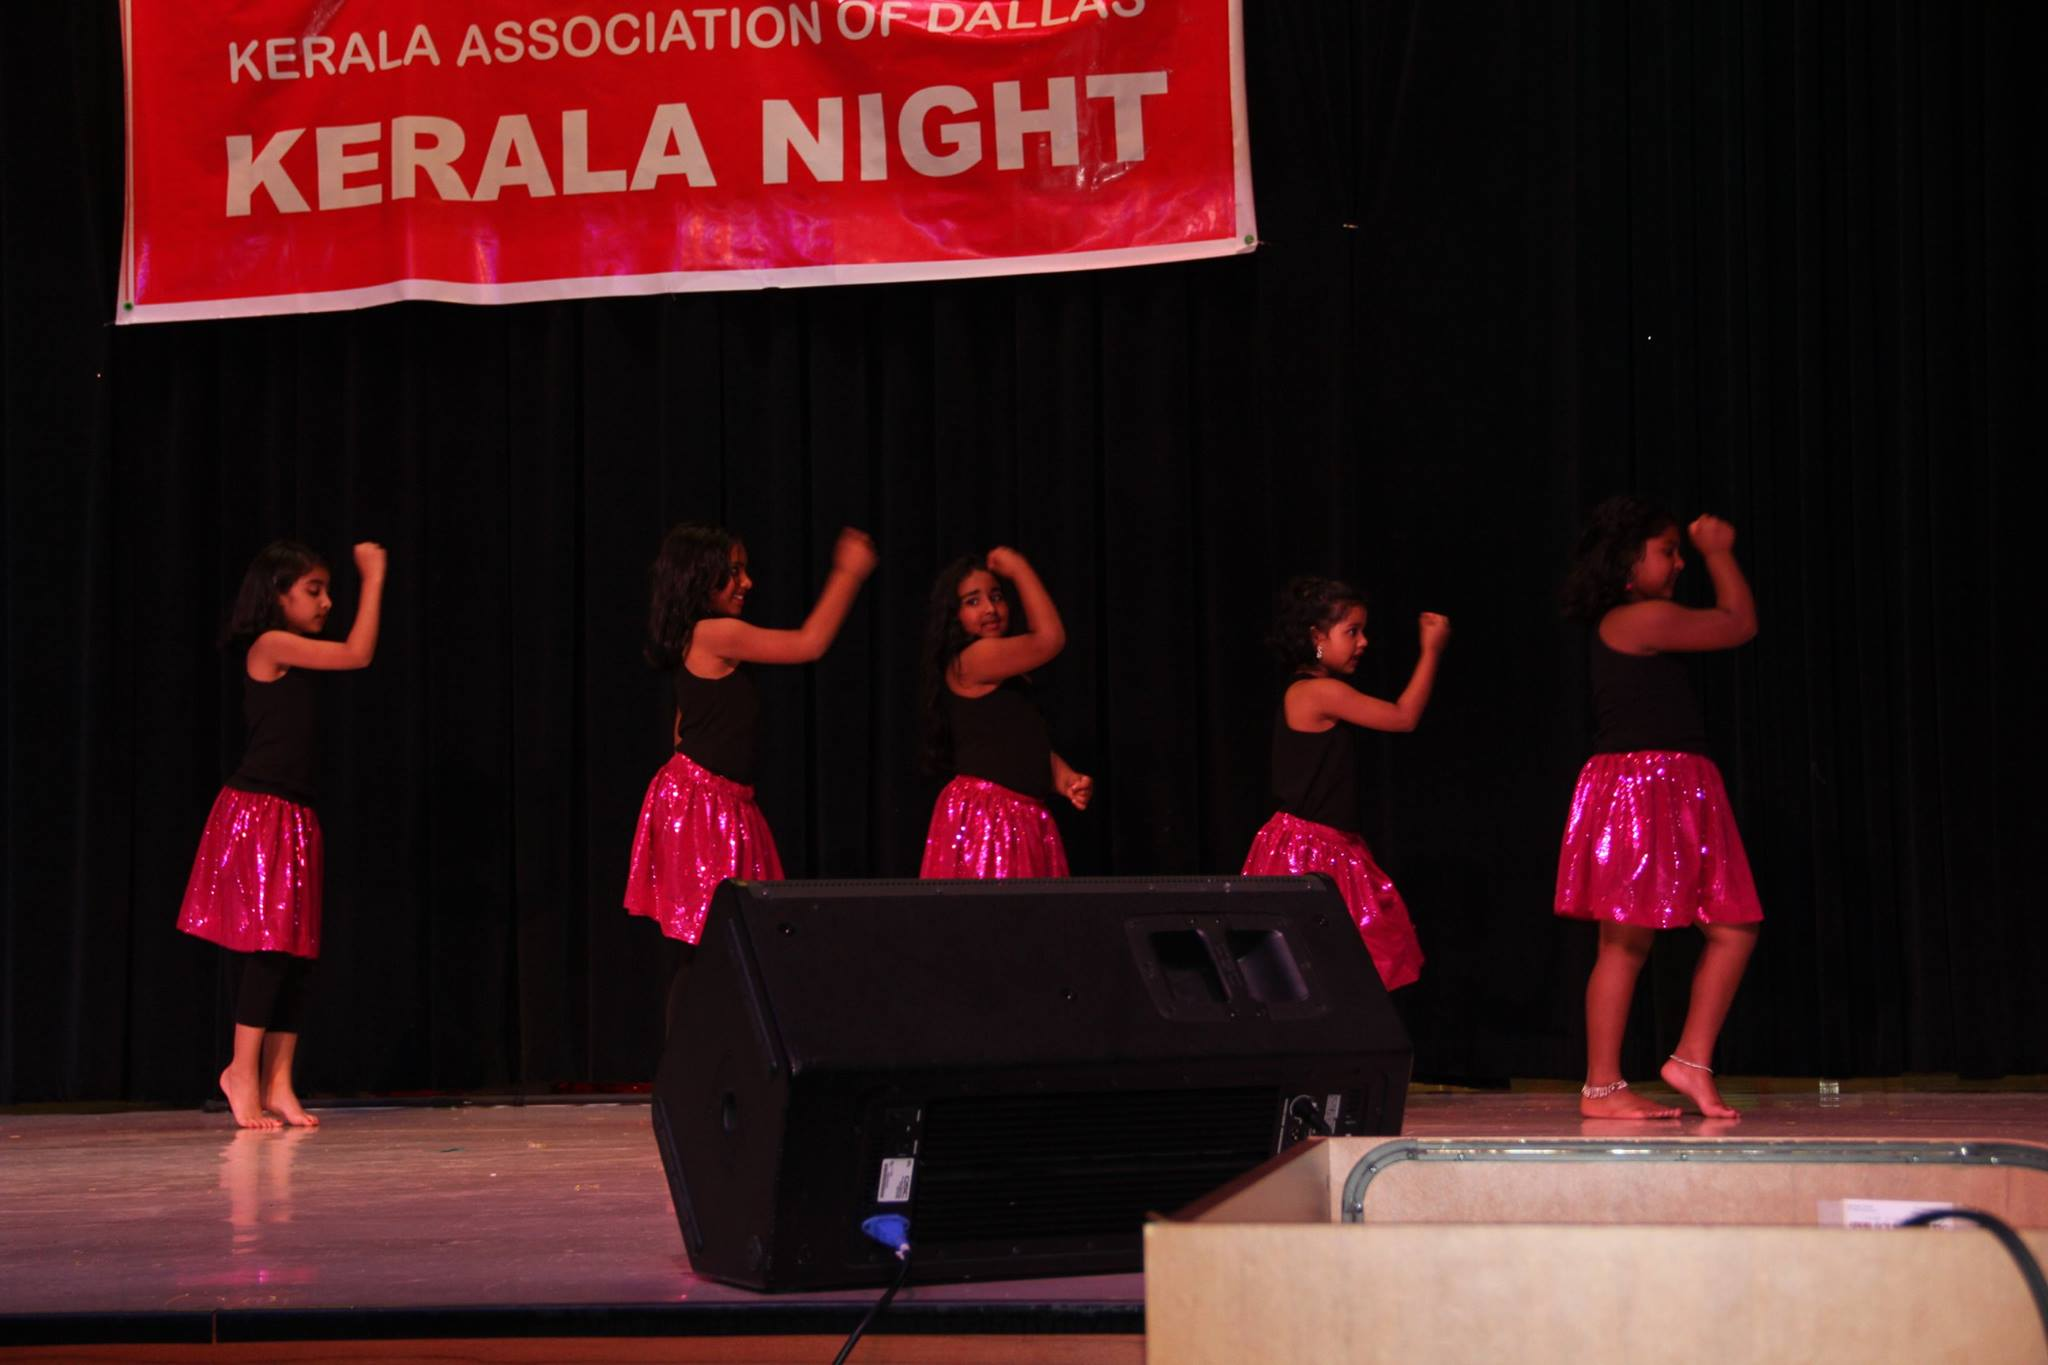 Kerala Night 2016